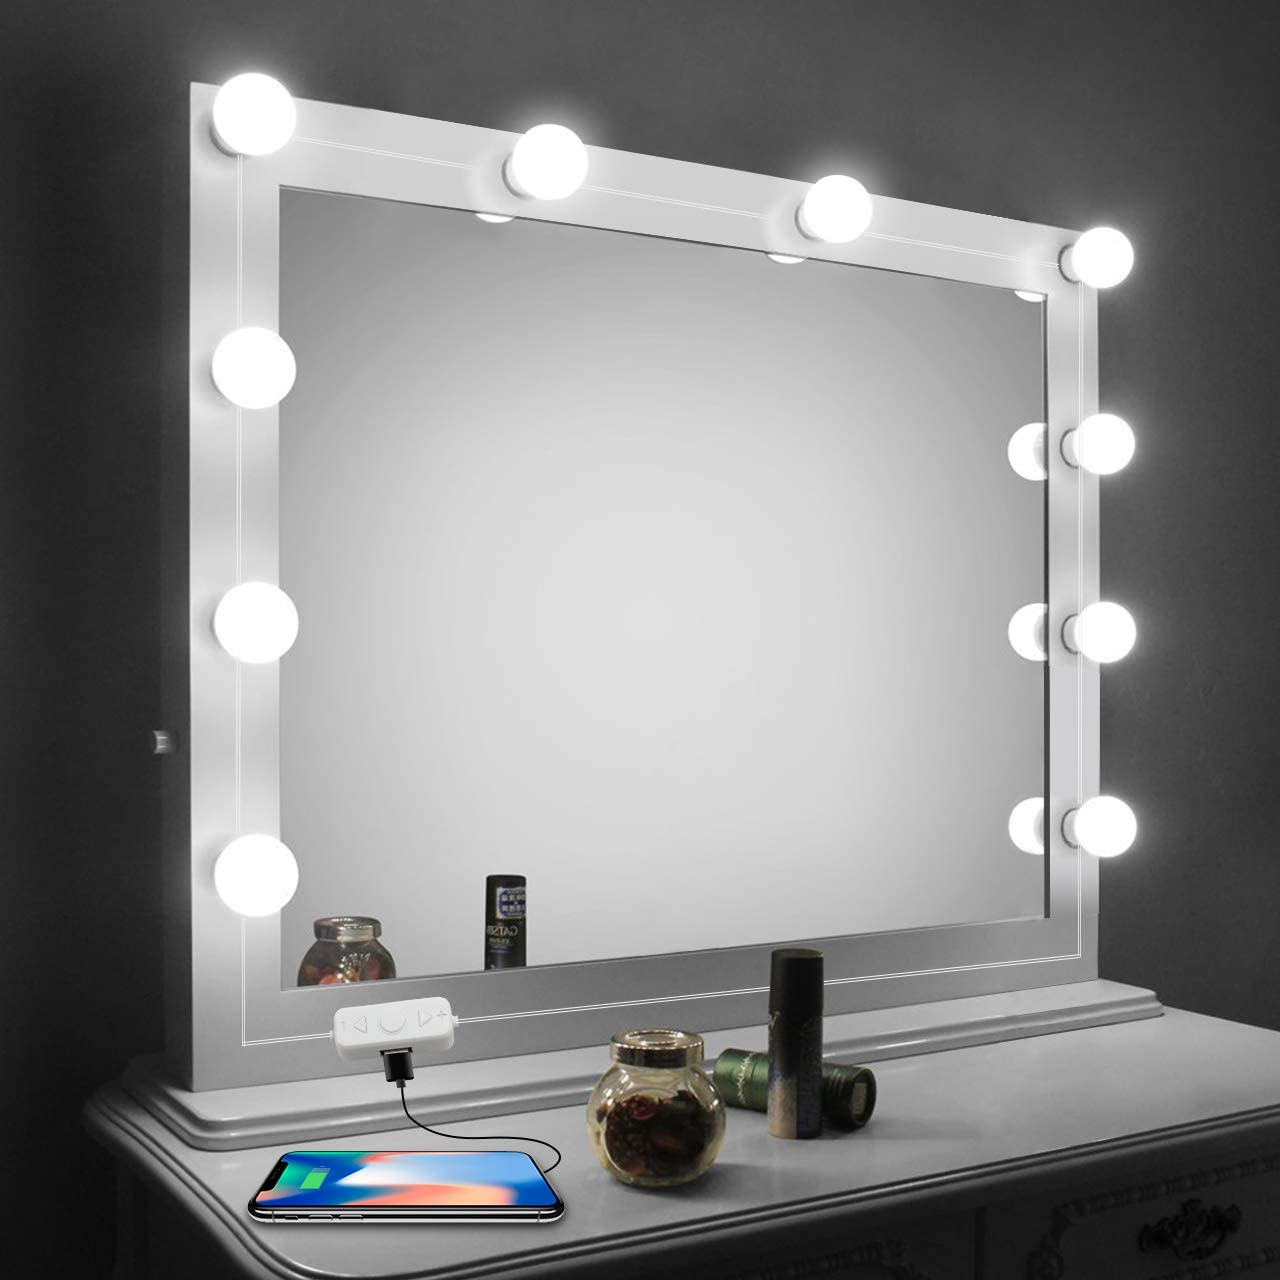 Vanity Mirror Lights Kit,LED Lights for Mirror with Dimmer and USB Phone  Charger,LED Makeup Mirror Lights Kit Hollywood Style Lighting Fixture Strip  ...